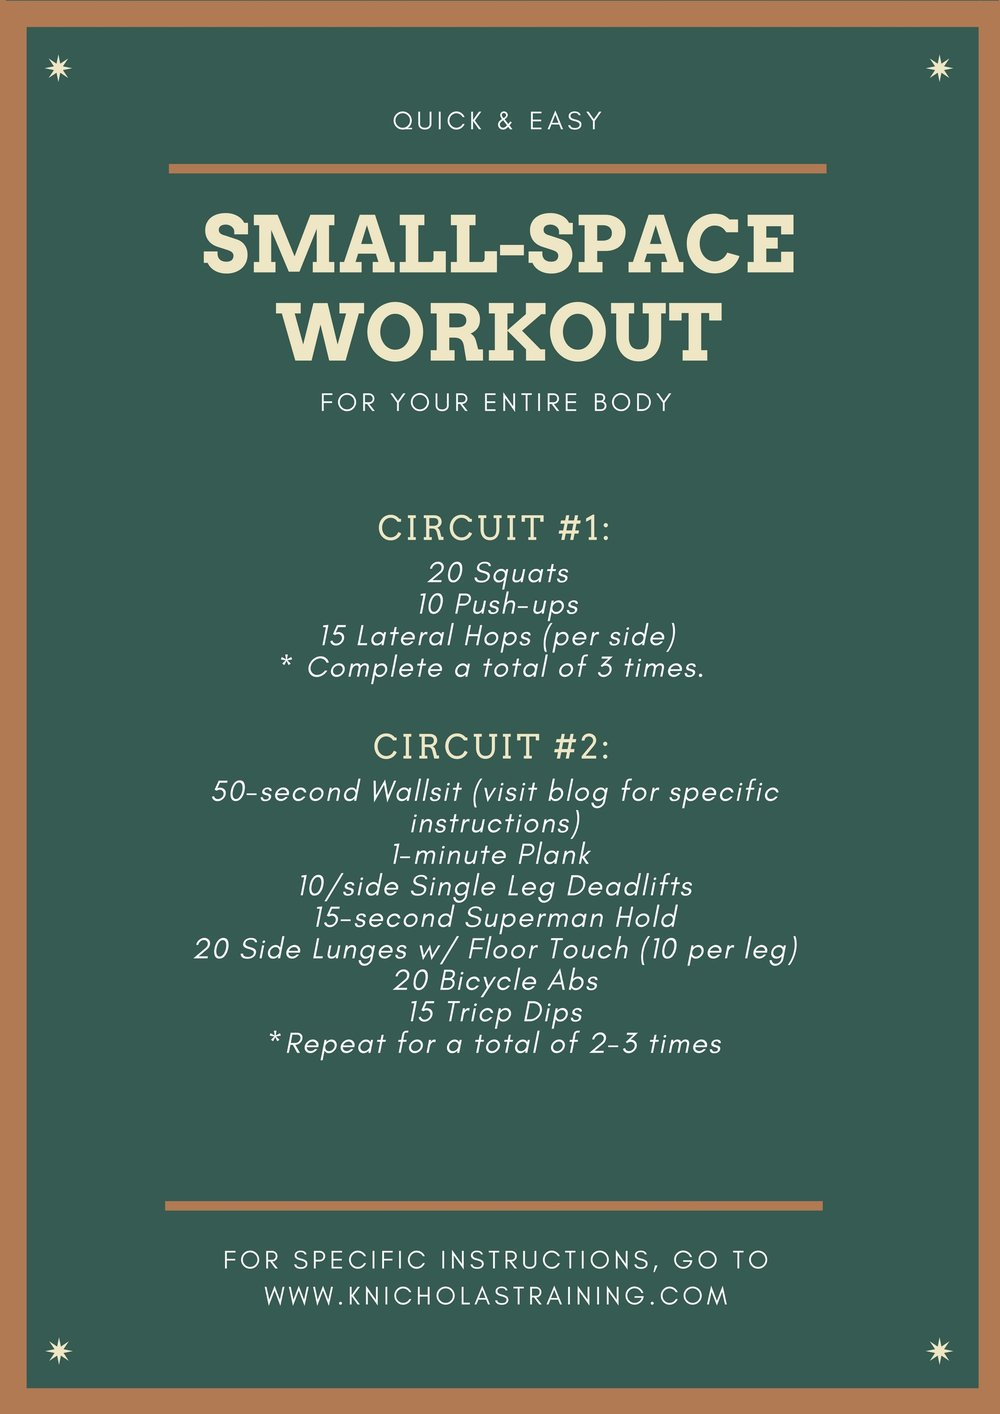 Small-Space Workout